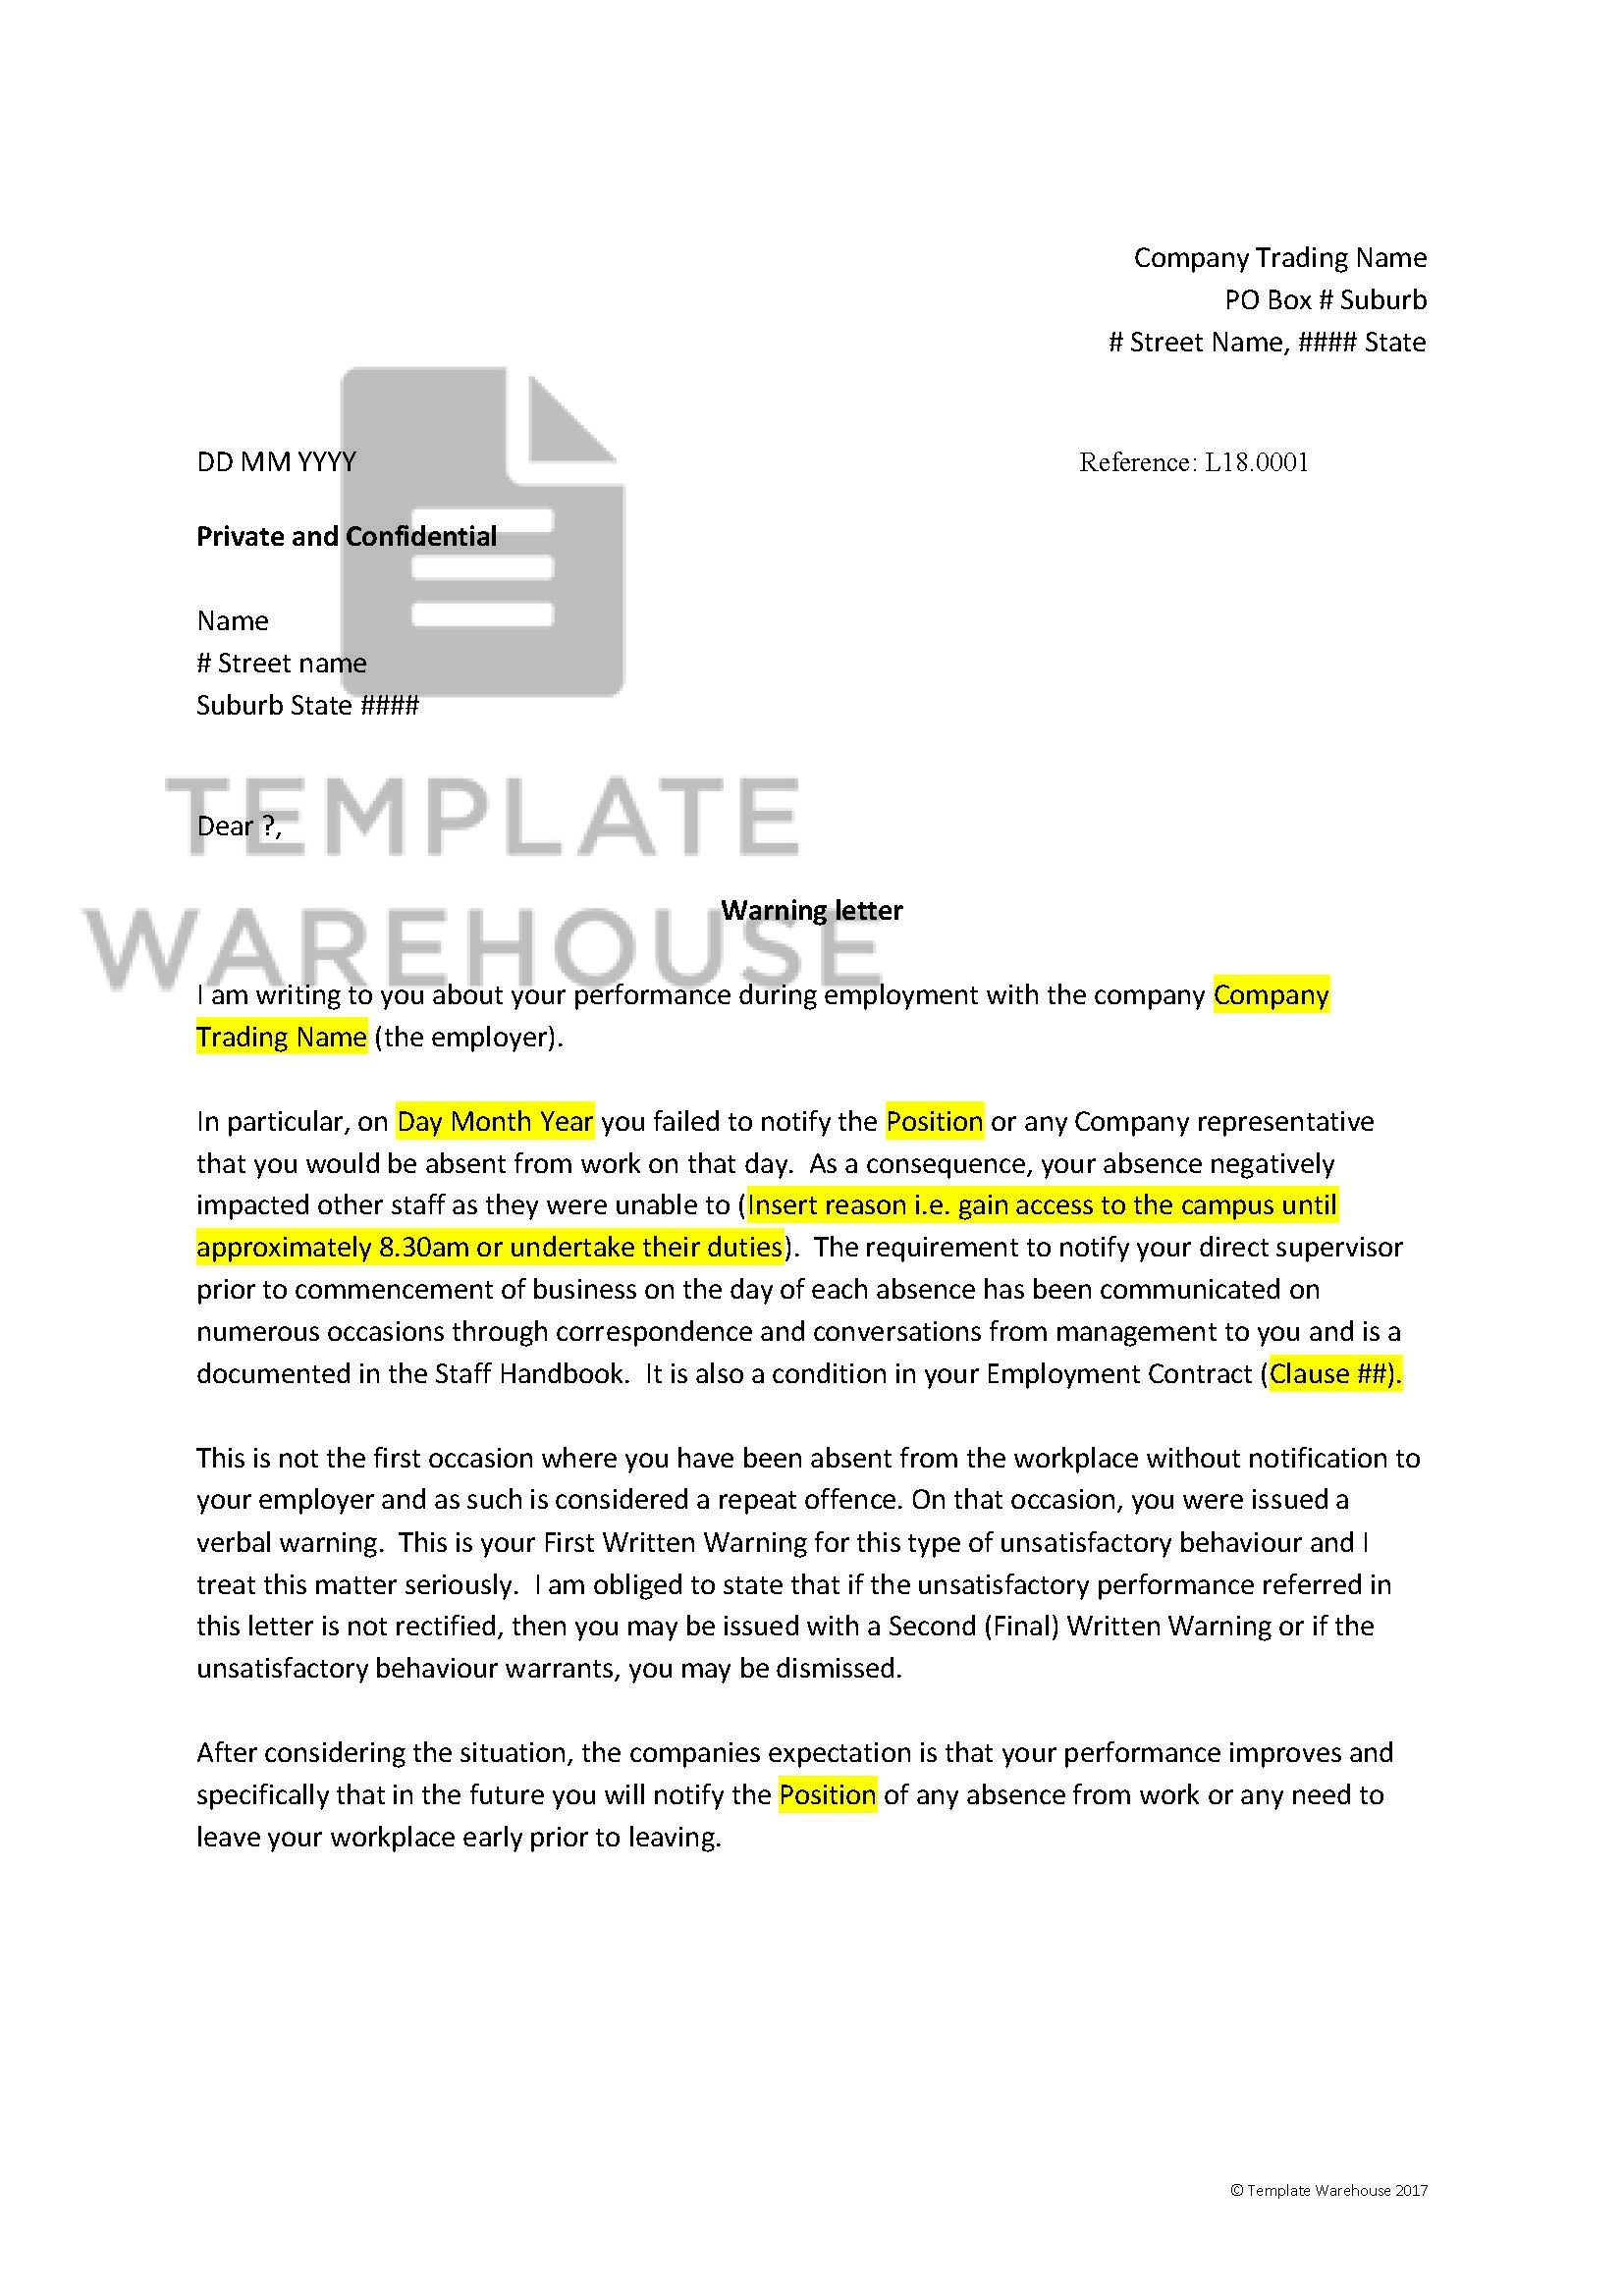 Hrm 03 004 Employee Warning Letter Template Warehouse